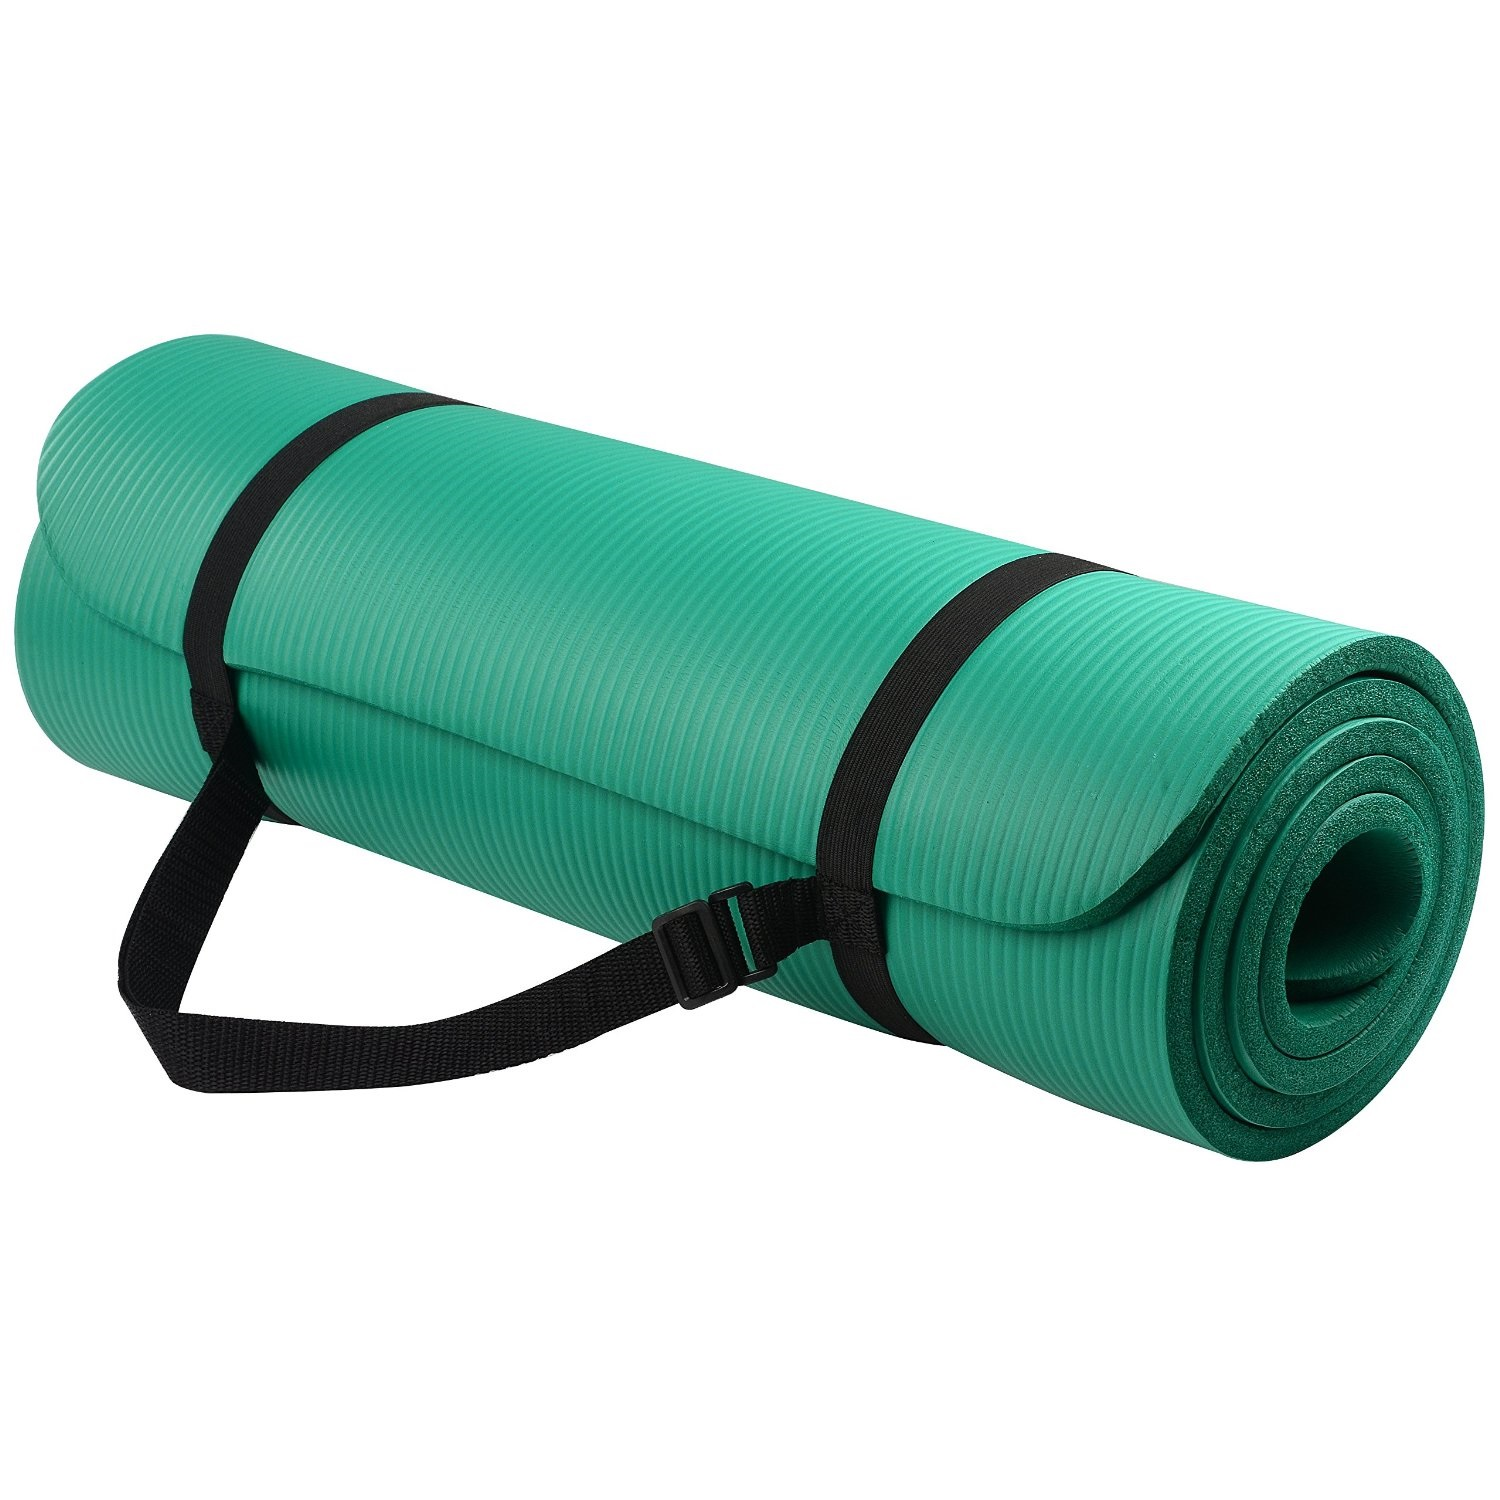 balancefrom goyoga 1/2 inch high density yoga mat with carrying strap green